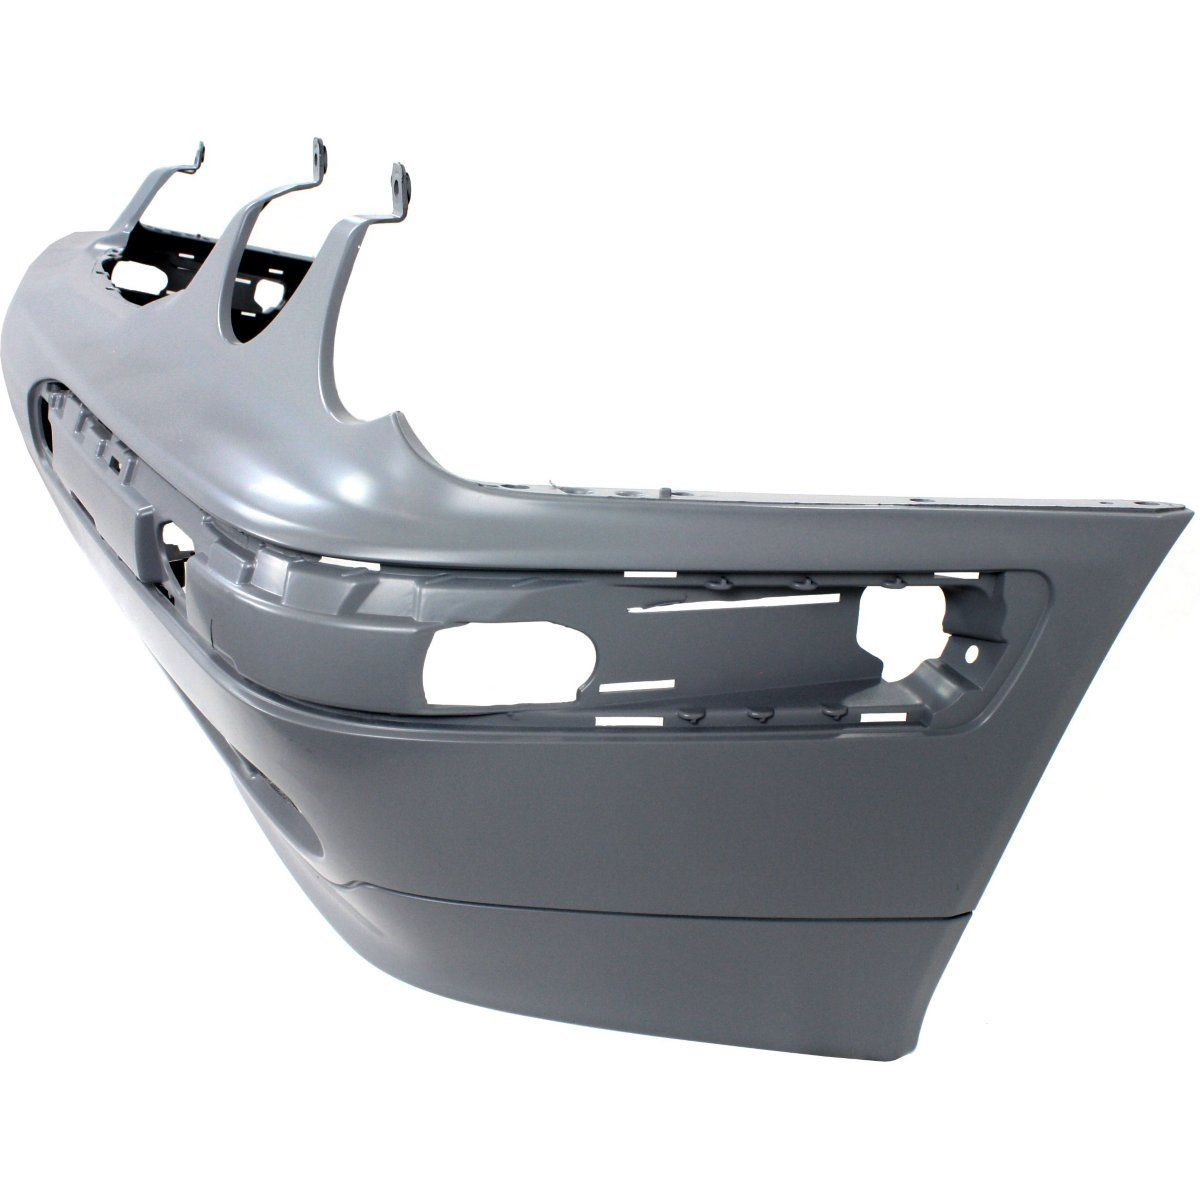 2000-2003 MERCEDES-BENZ E320 Front Bumper Cover w/o Sport package Painted to Match